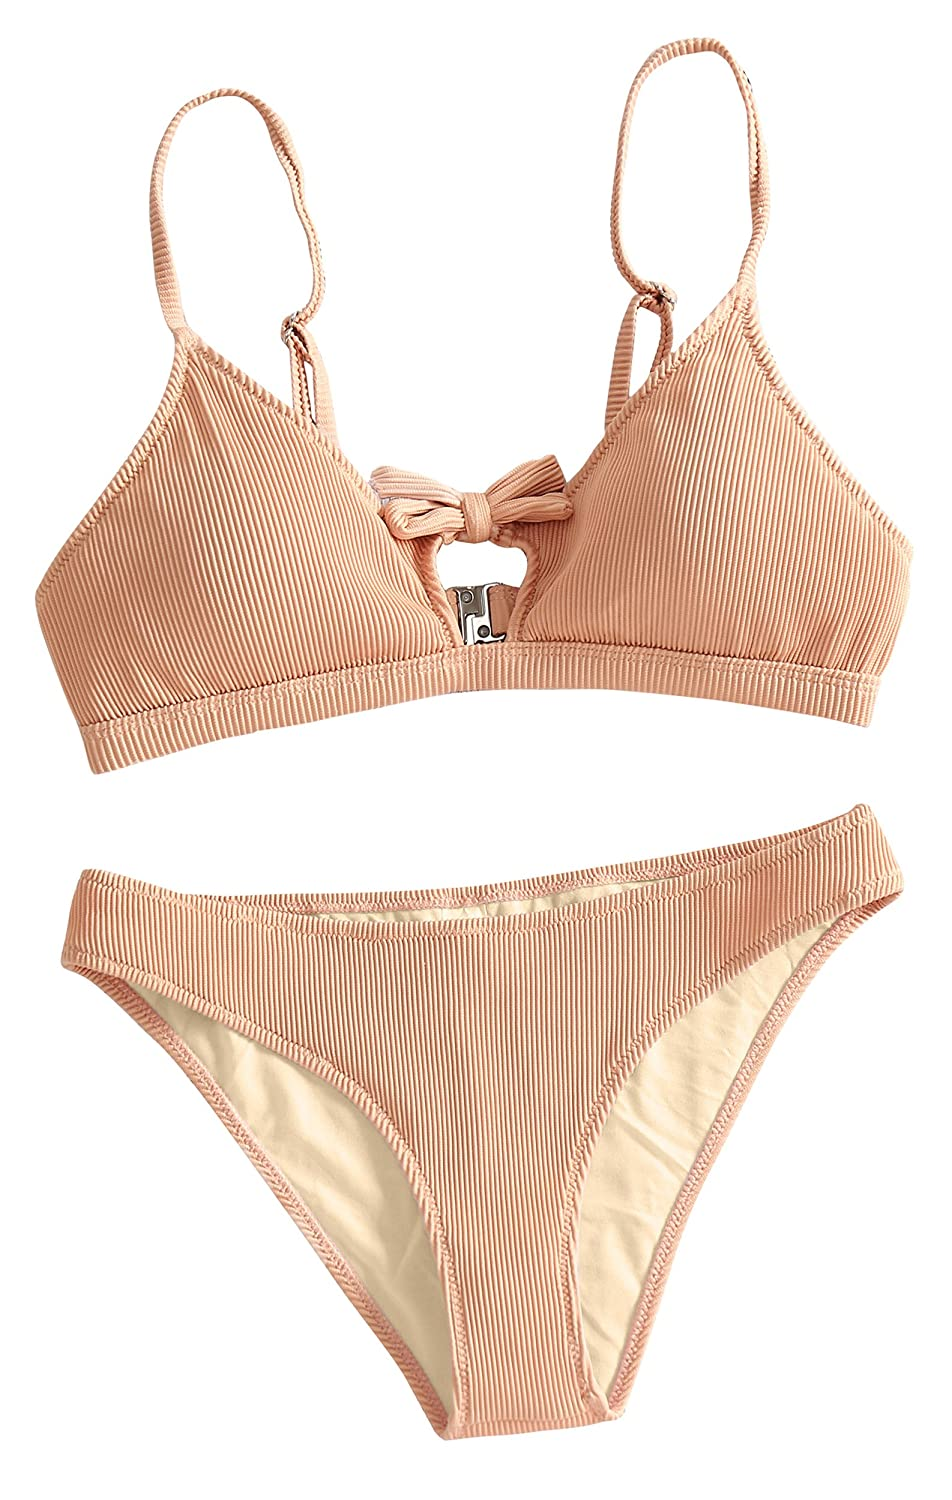 4838ef280042d Features: Paiyiku womens tie knot front high waisted thong ribbed bikini  sets, adjustable shoulder straps bikinis top with padded, hook closure.